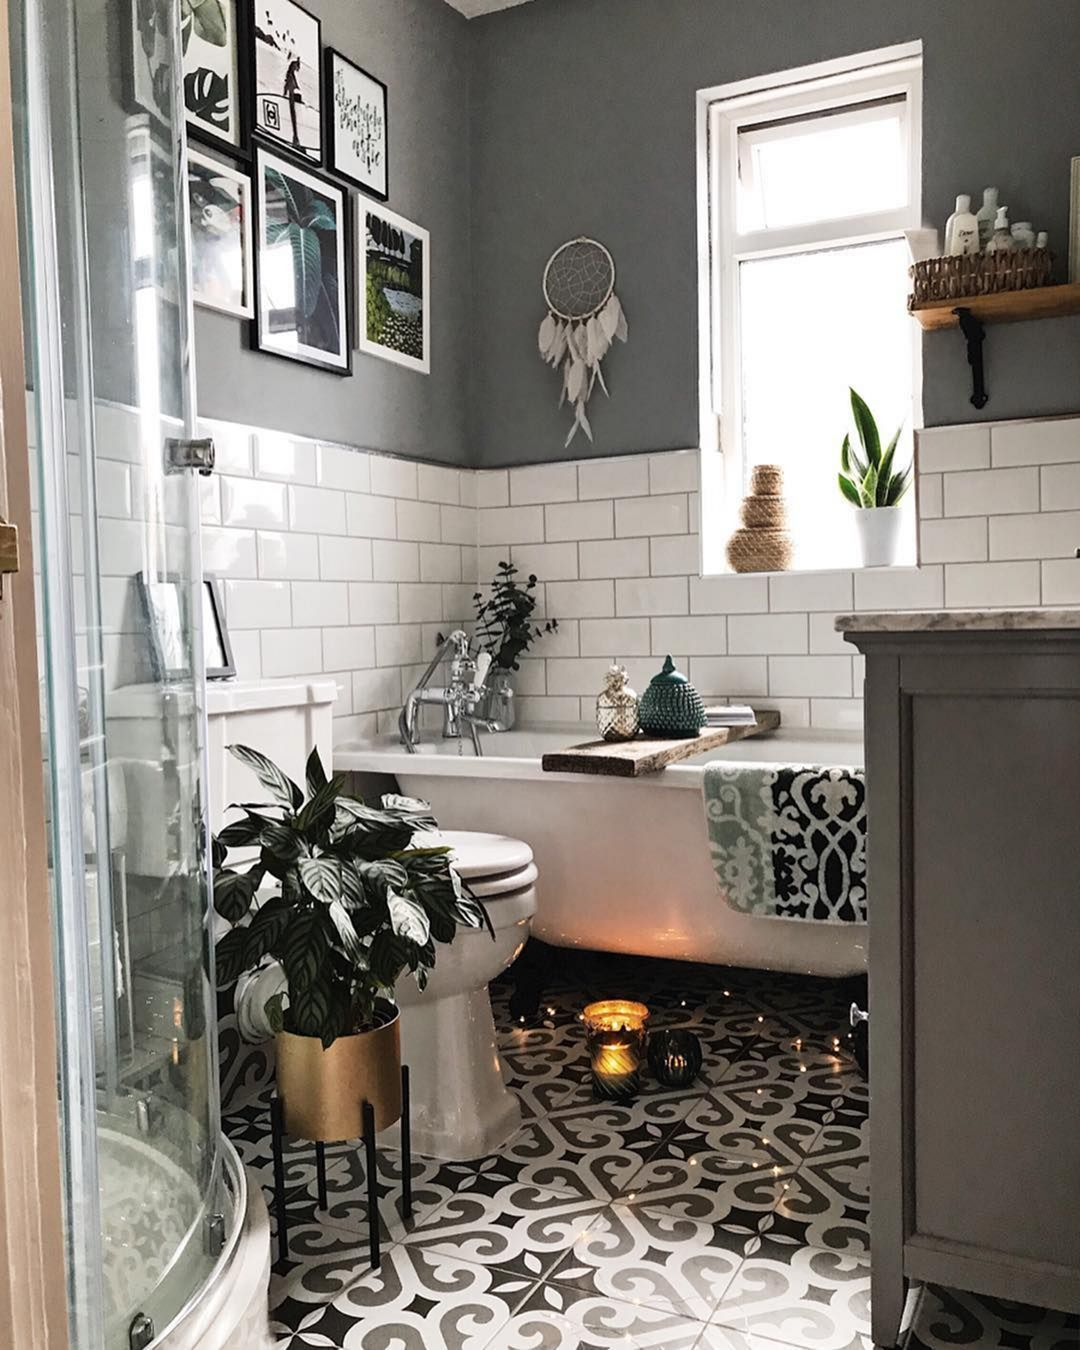 10 Most Beautiful Small Bathroom Designs To Look Wider ...